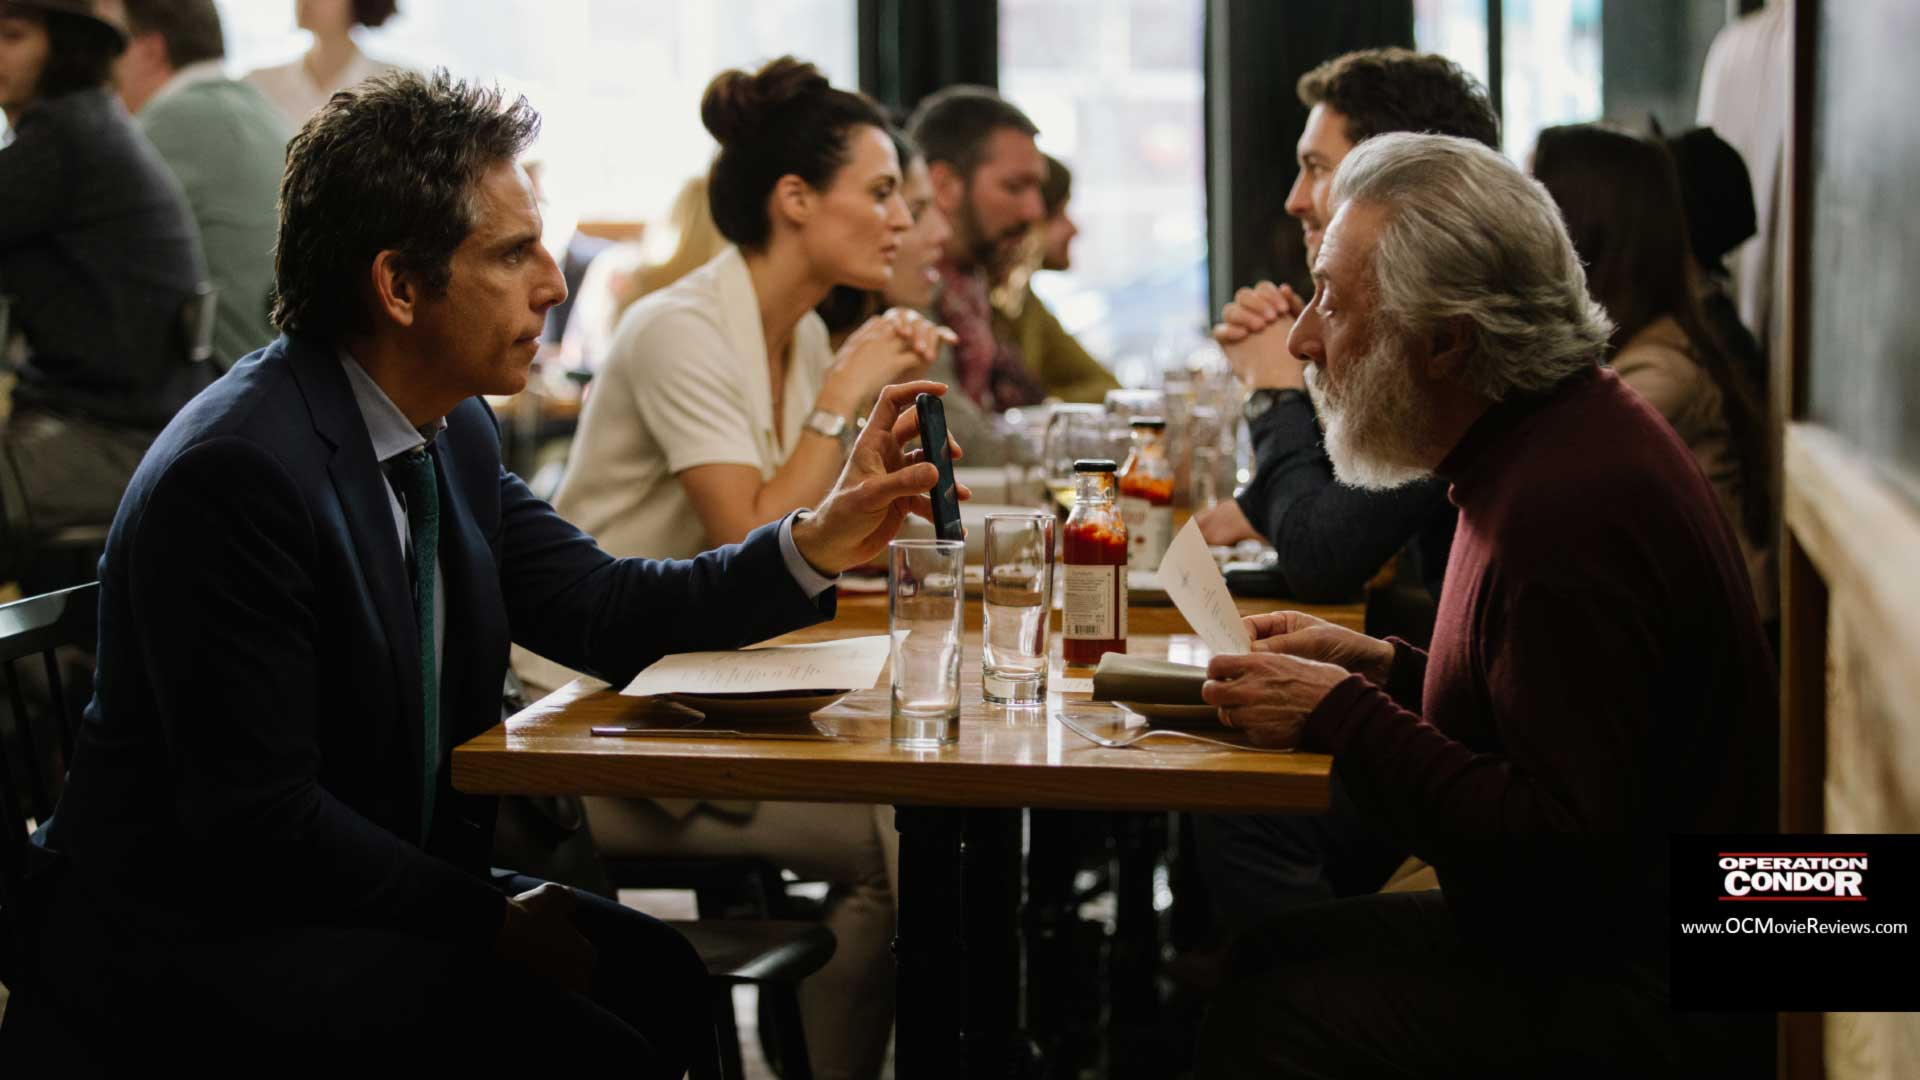 The Meyerowitz Stories (New and Selected) Teaser & Images - OC Movie Reviews - Movie Reviews, Movie News, Documentary Reviews, Short Films, Short Film Reviews, Trailers, Movie Trailers, Interviews, film reviews, film news, hollywood, indie films, documentaries